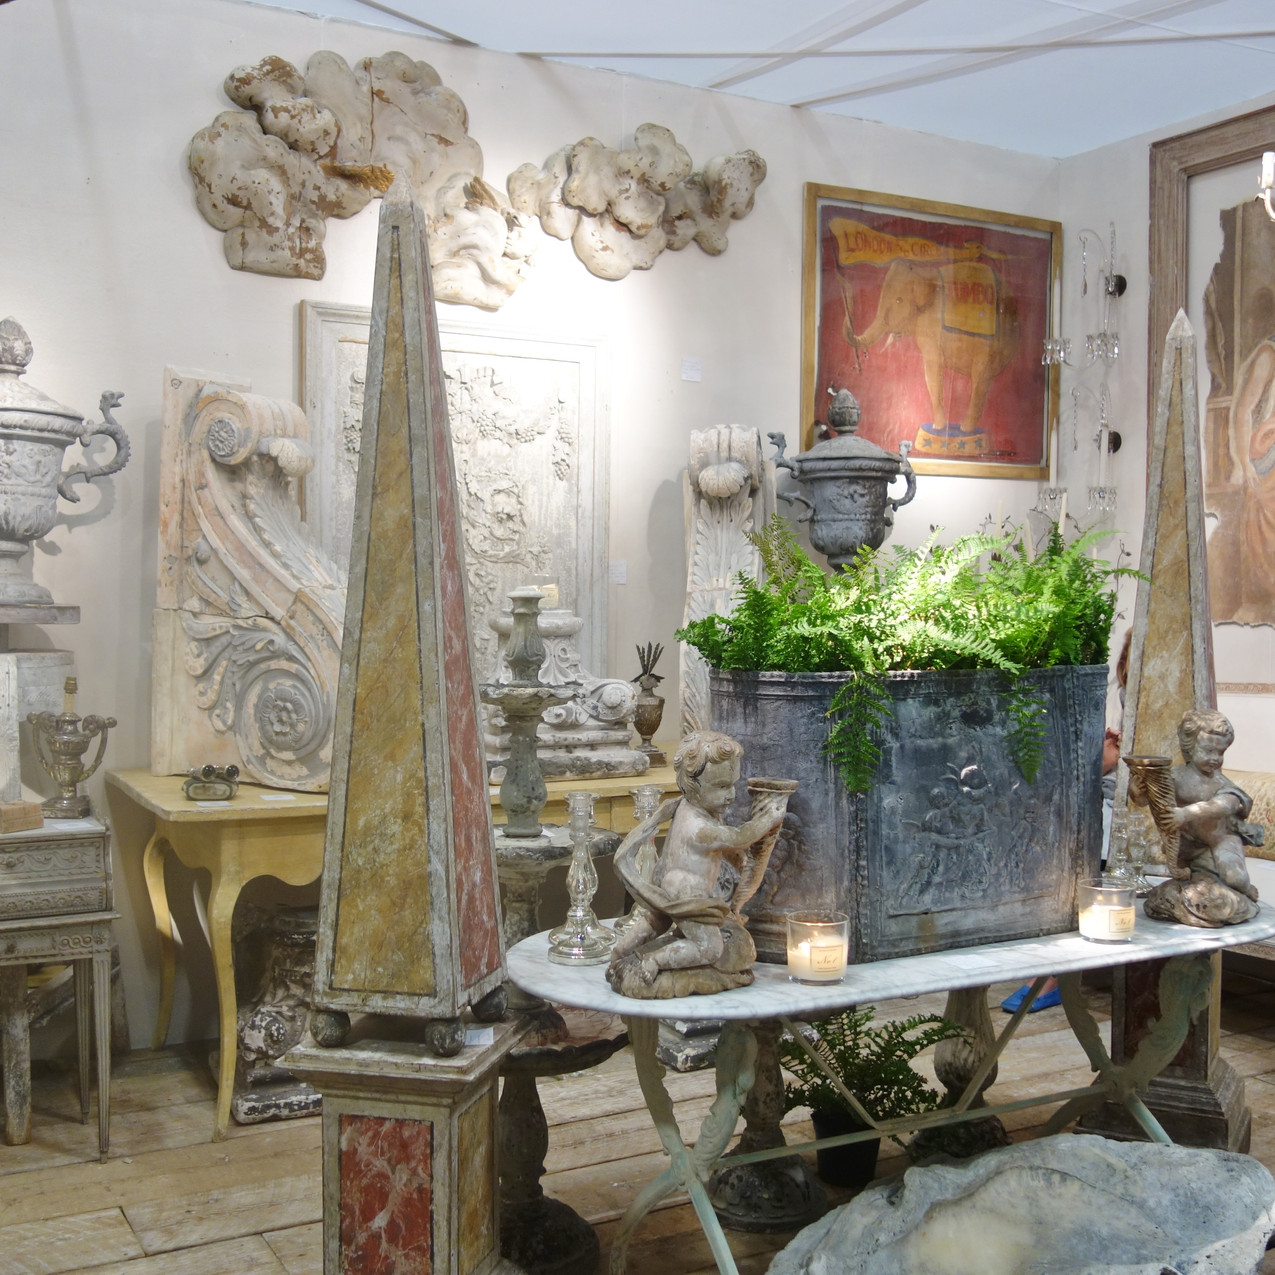 The Decorative Fair